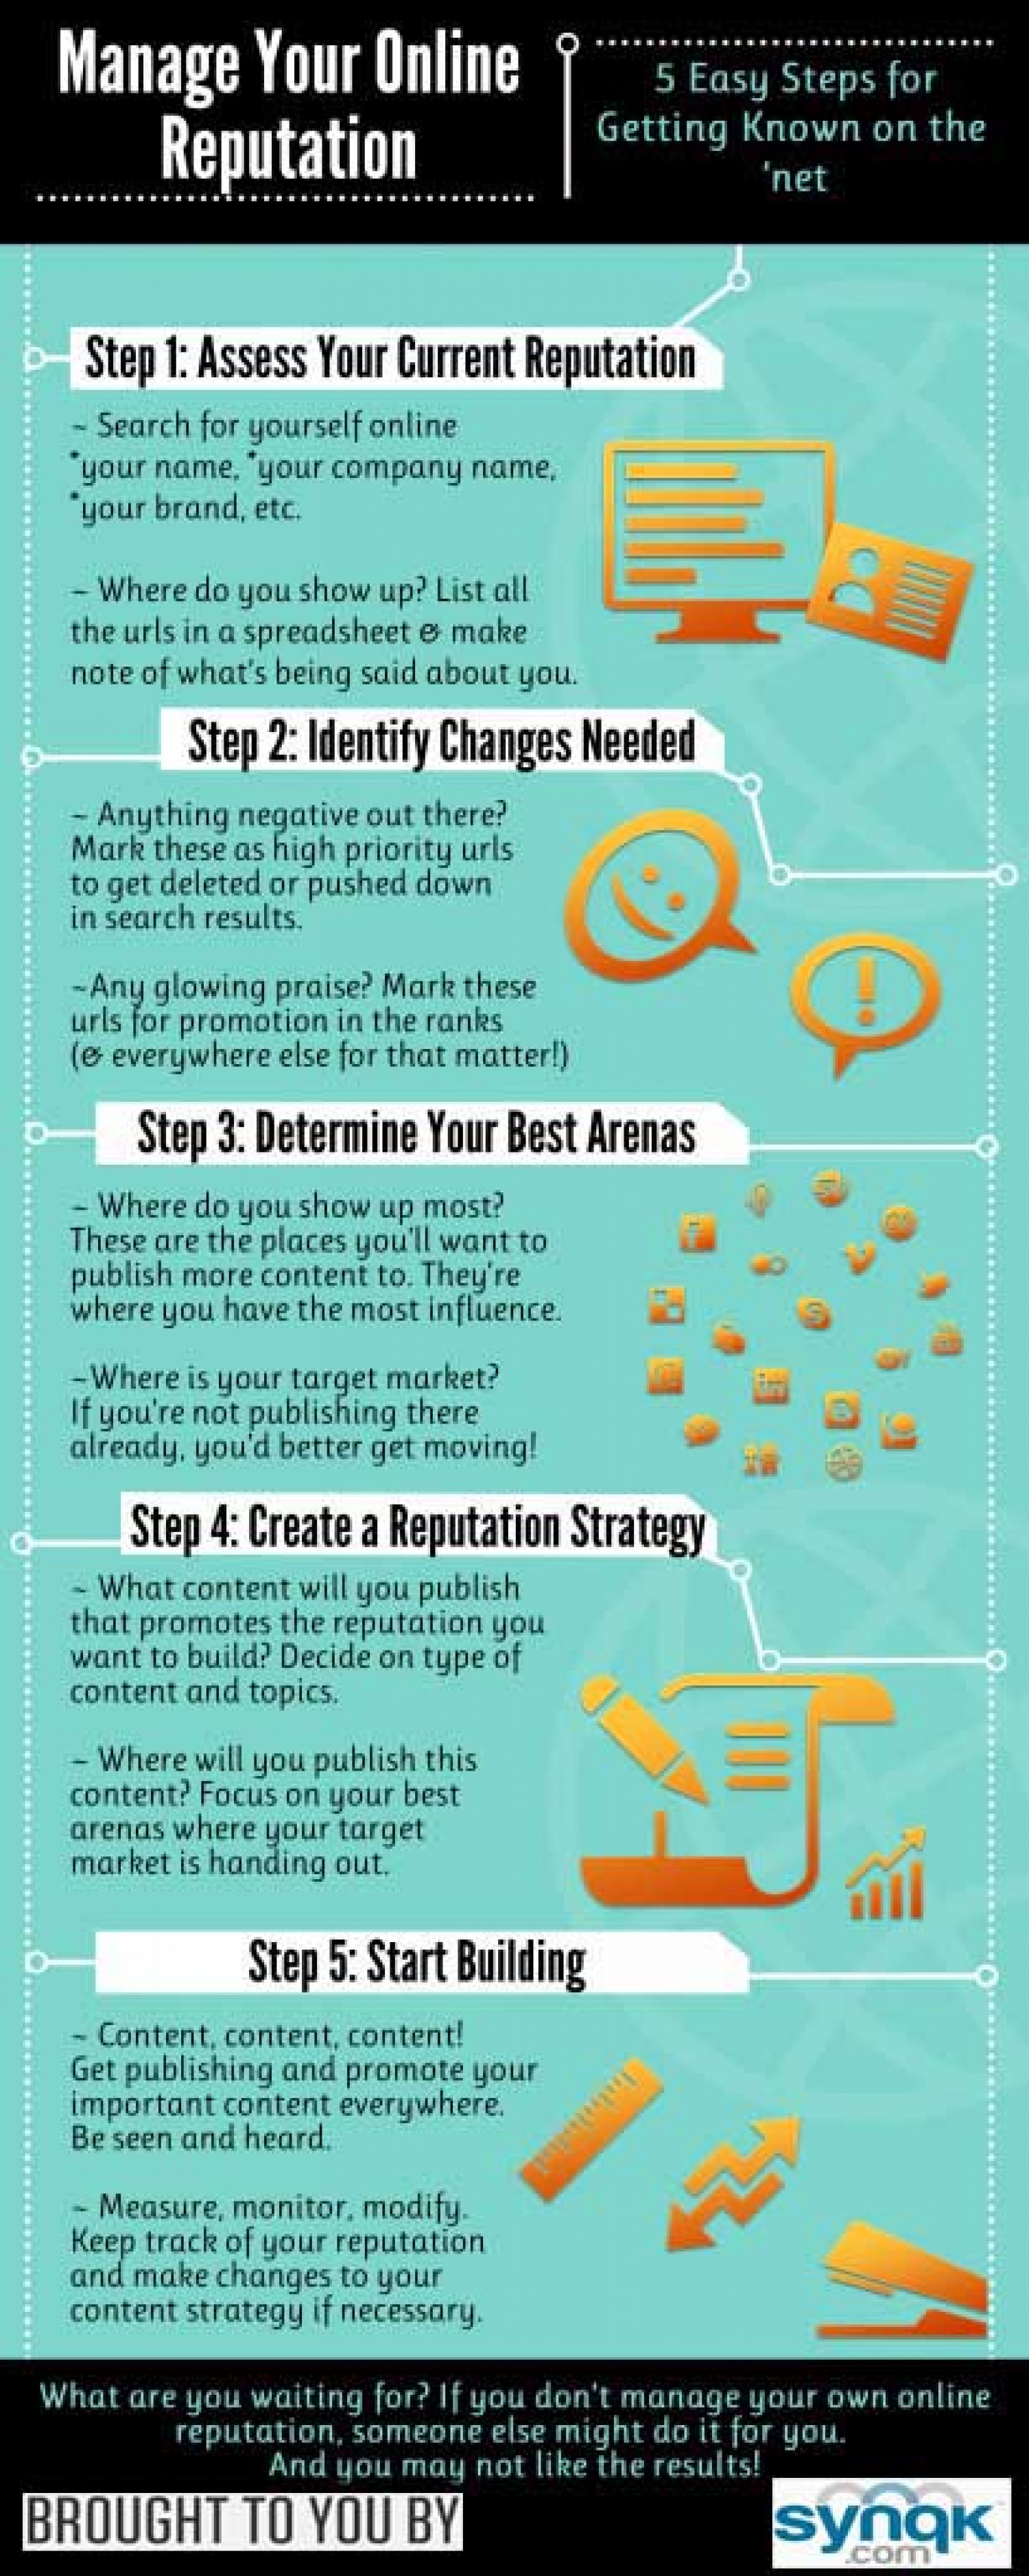 Manage Your Online Reputation Infographic